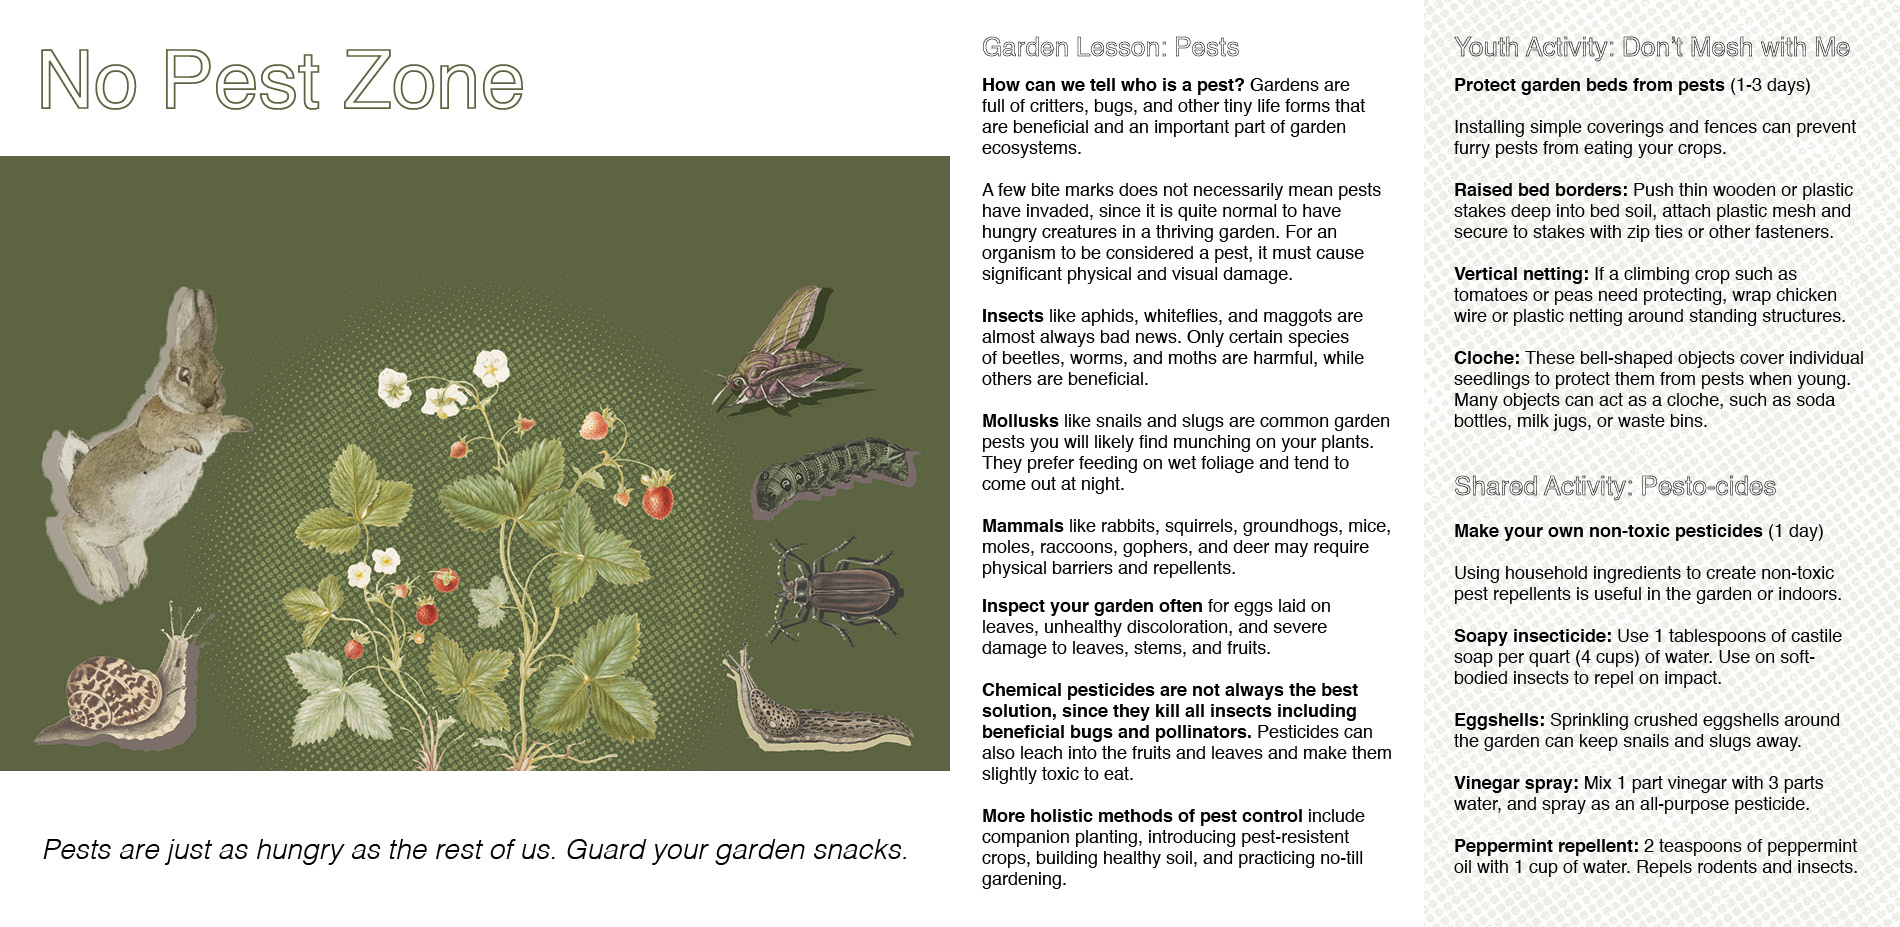 No Pest Zone: Identifying and Managing Garden Pests